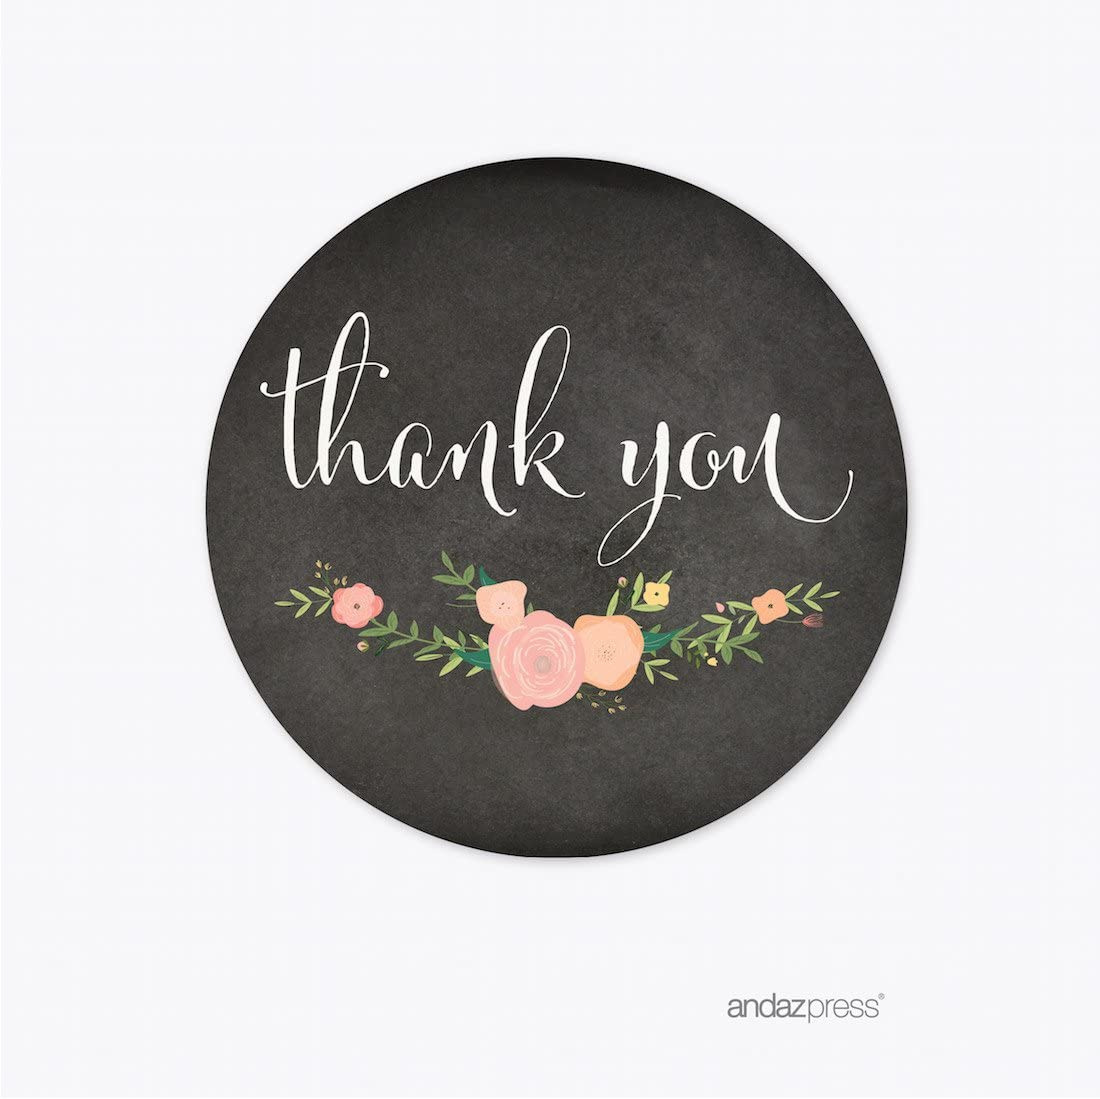 Andaz Press Chalkboard Floral Party Wedding Collection, Round Circle Label Stickers, Thank You, 40-Pack, Baby Bridal Shower Birthday Baptism Anniversary Decor Decorations